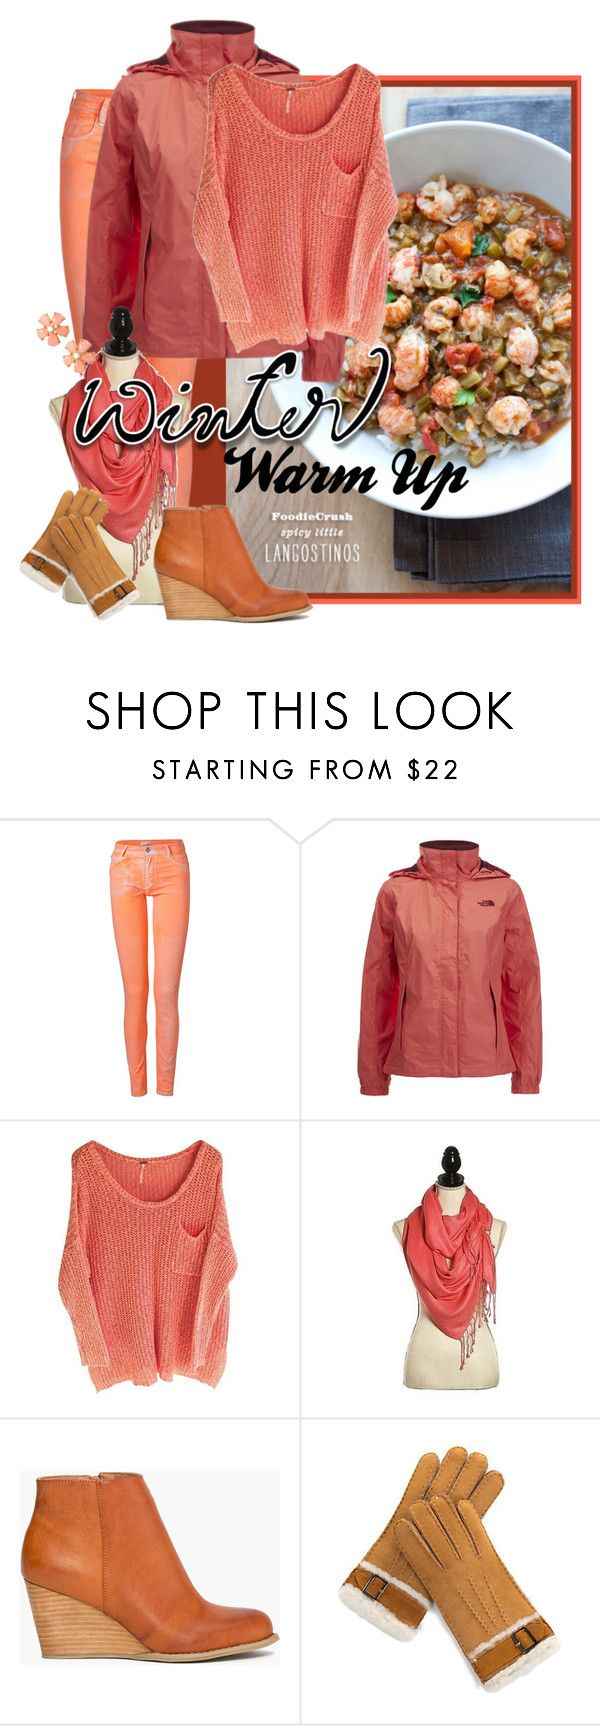 """""""Winter Warm Up"""" by shoppe23 on Polyvore featuring Faith Connexion, The North Face, Overland Sheepskin Co., StreetStyle, Christmas, amazon, winterfashion and wintersweater"""